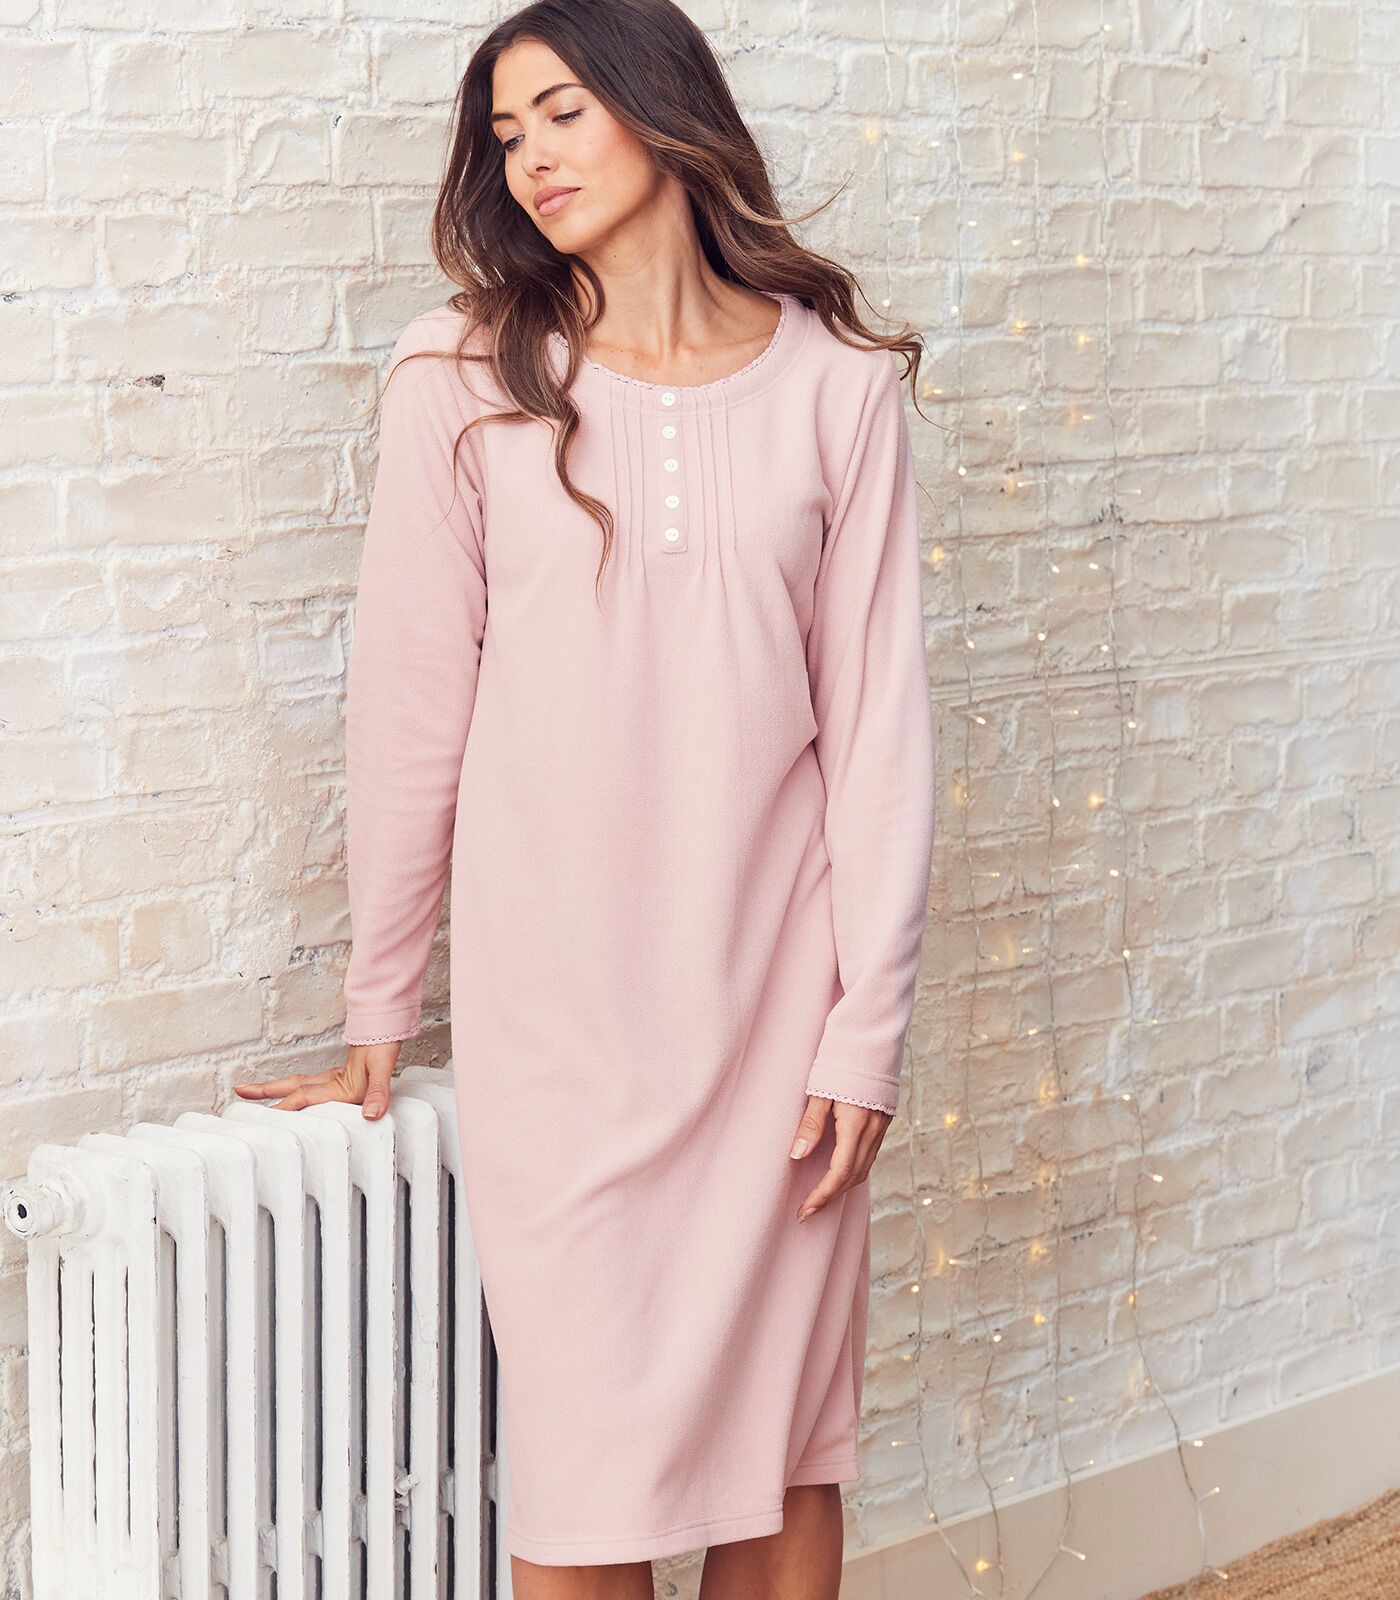 Cosy Nights In | Pack of 2 Fleece Nightdresses | By Cotton Traders